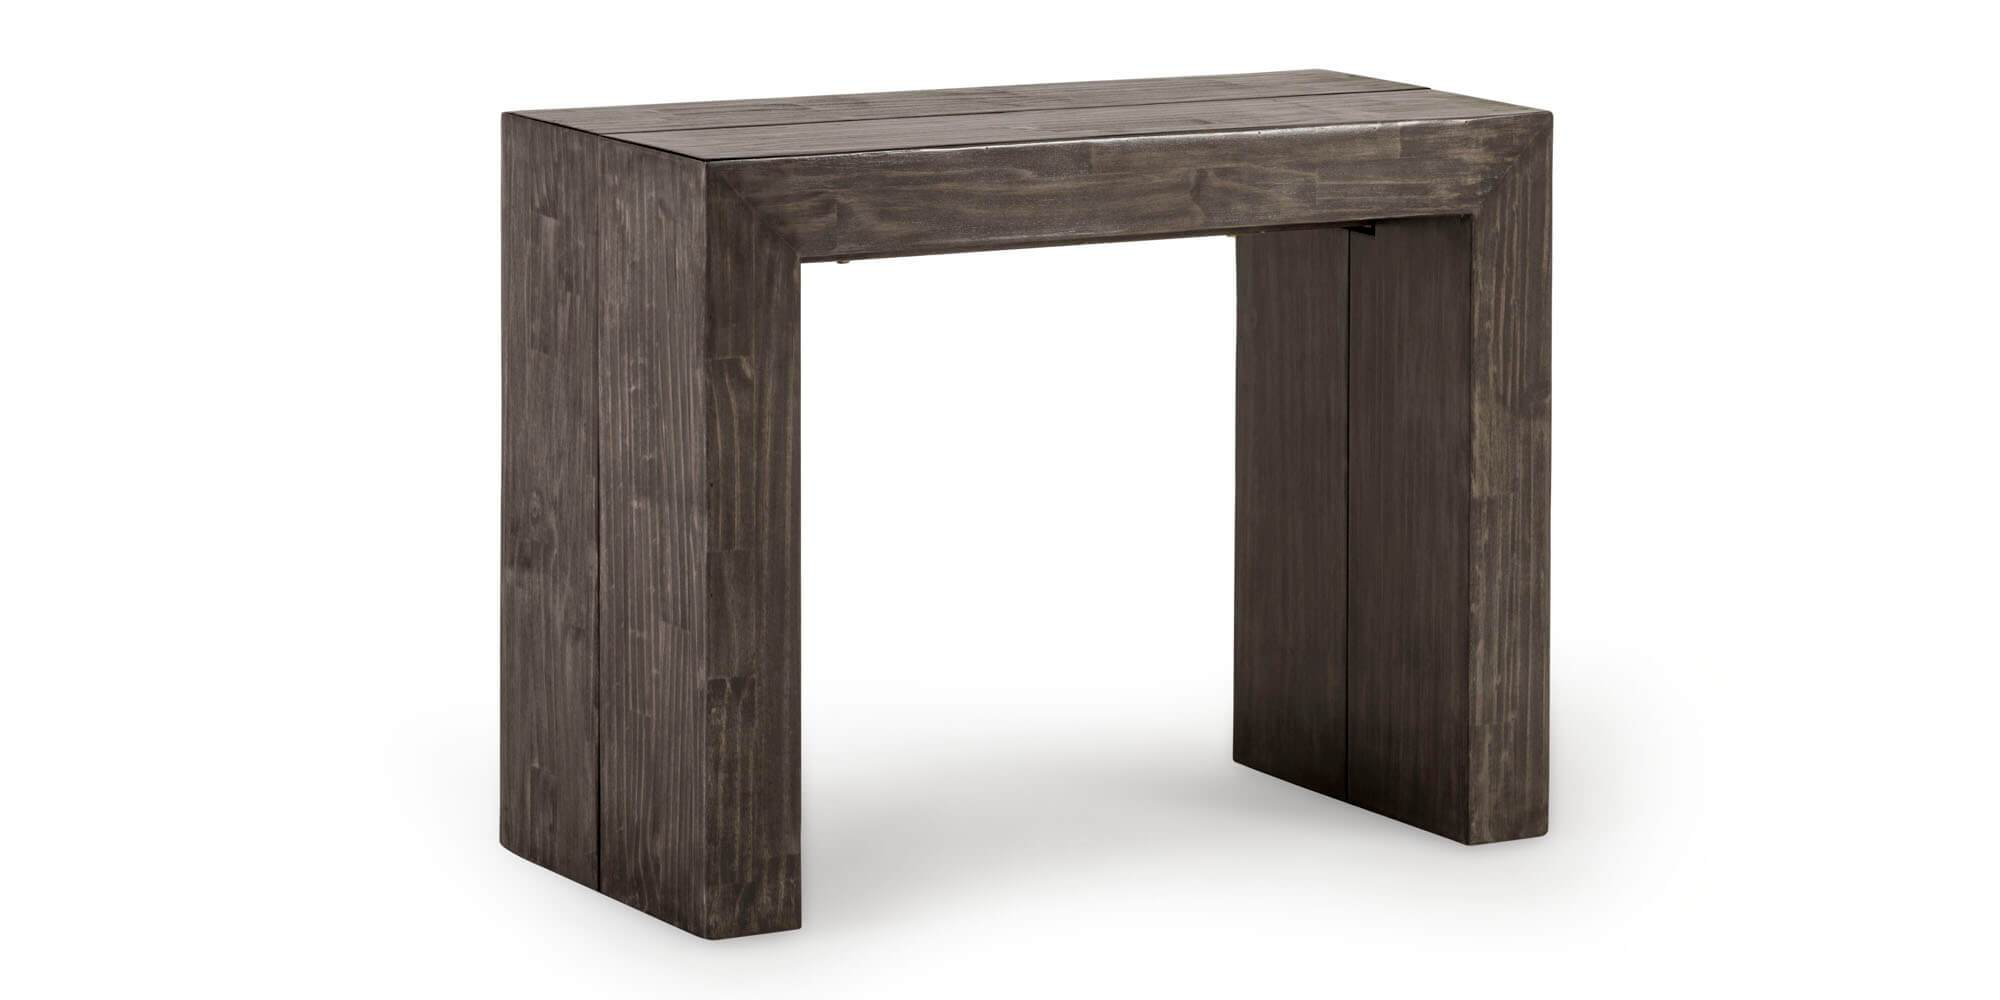 Le Transformer Table 2.0 + Bouleau gris